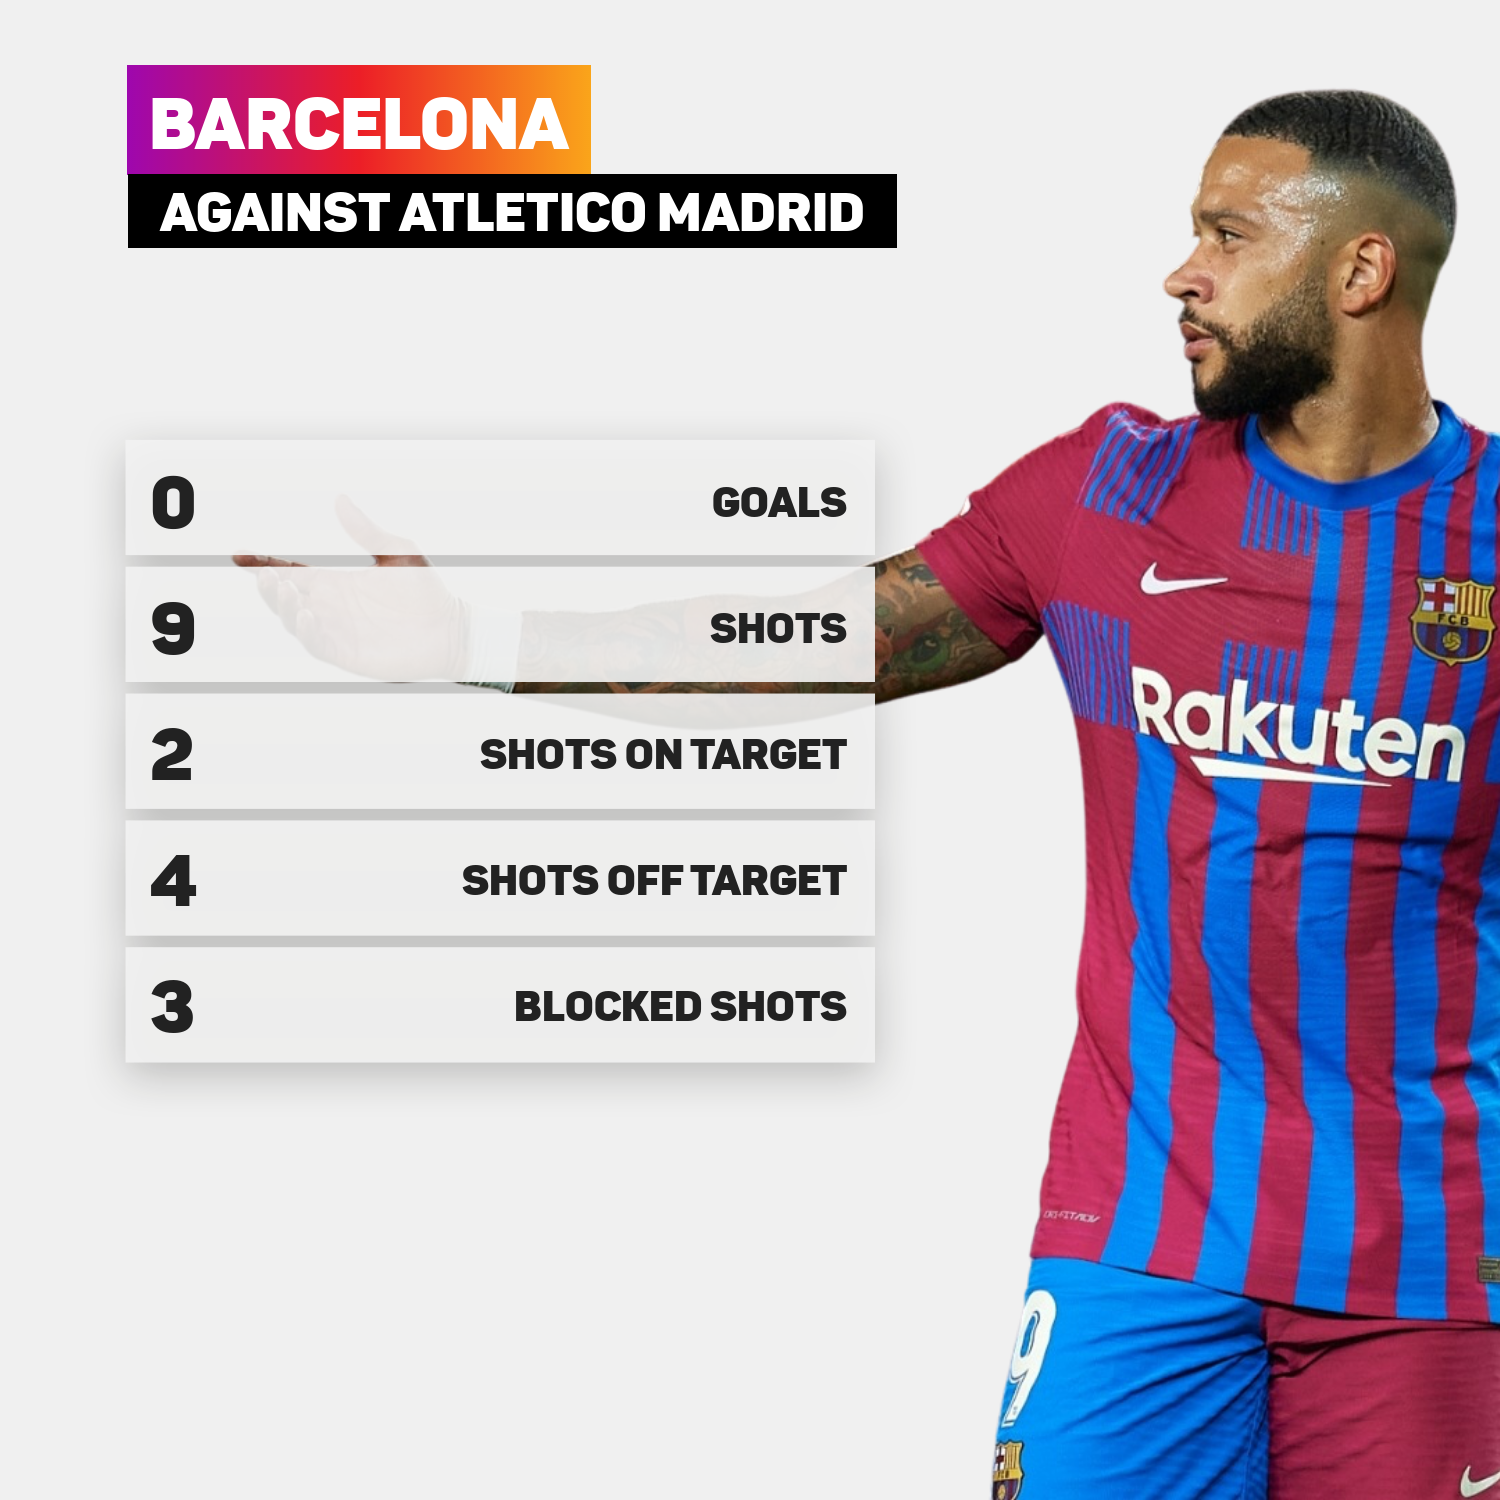 Barcelona had two shots on target against Atletico Madrid